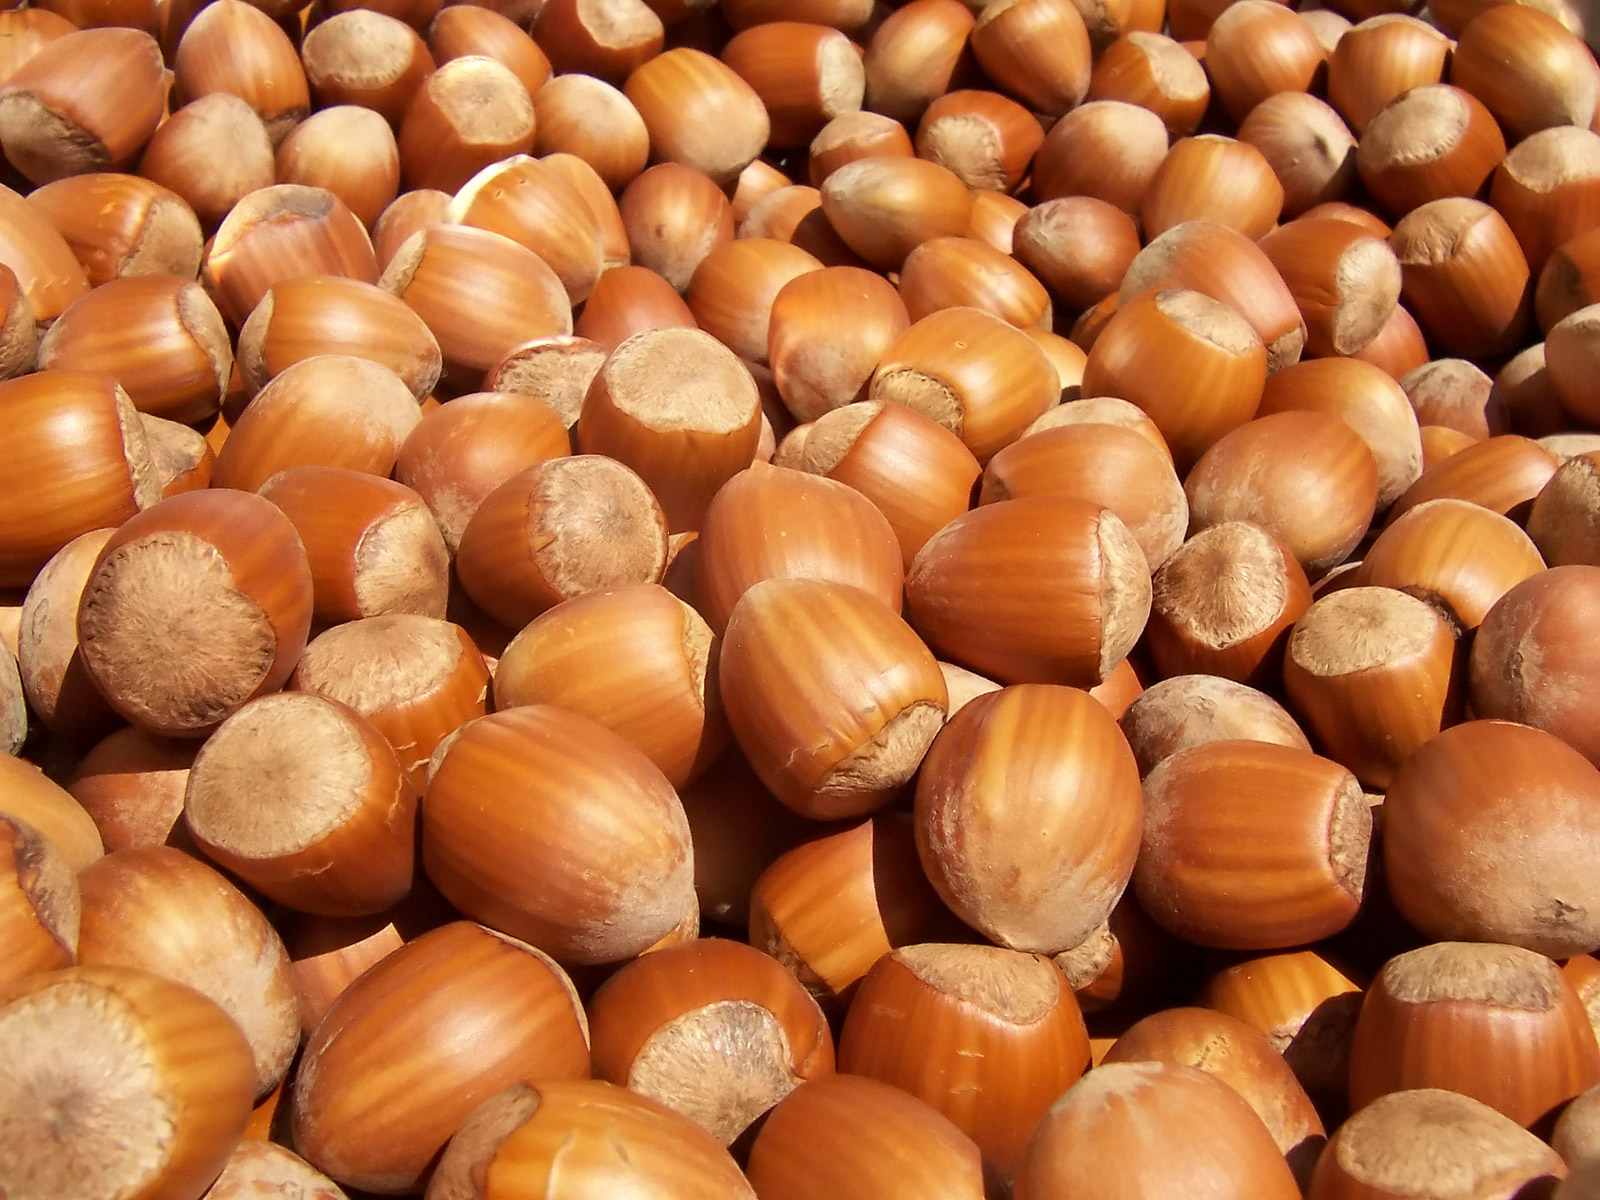 Premium Quality Grade A Natural Raw Hazelnut / Organic Grade A High Quality Hazelnut Hazelnut buyers